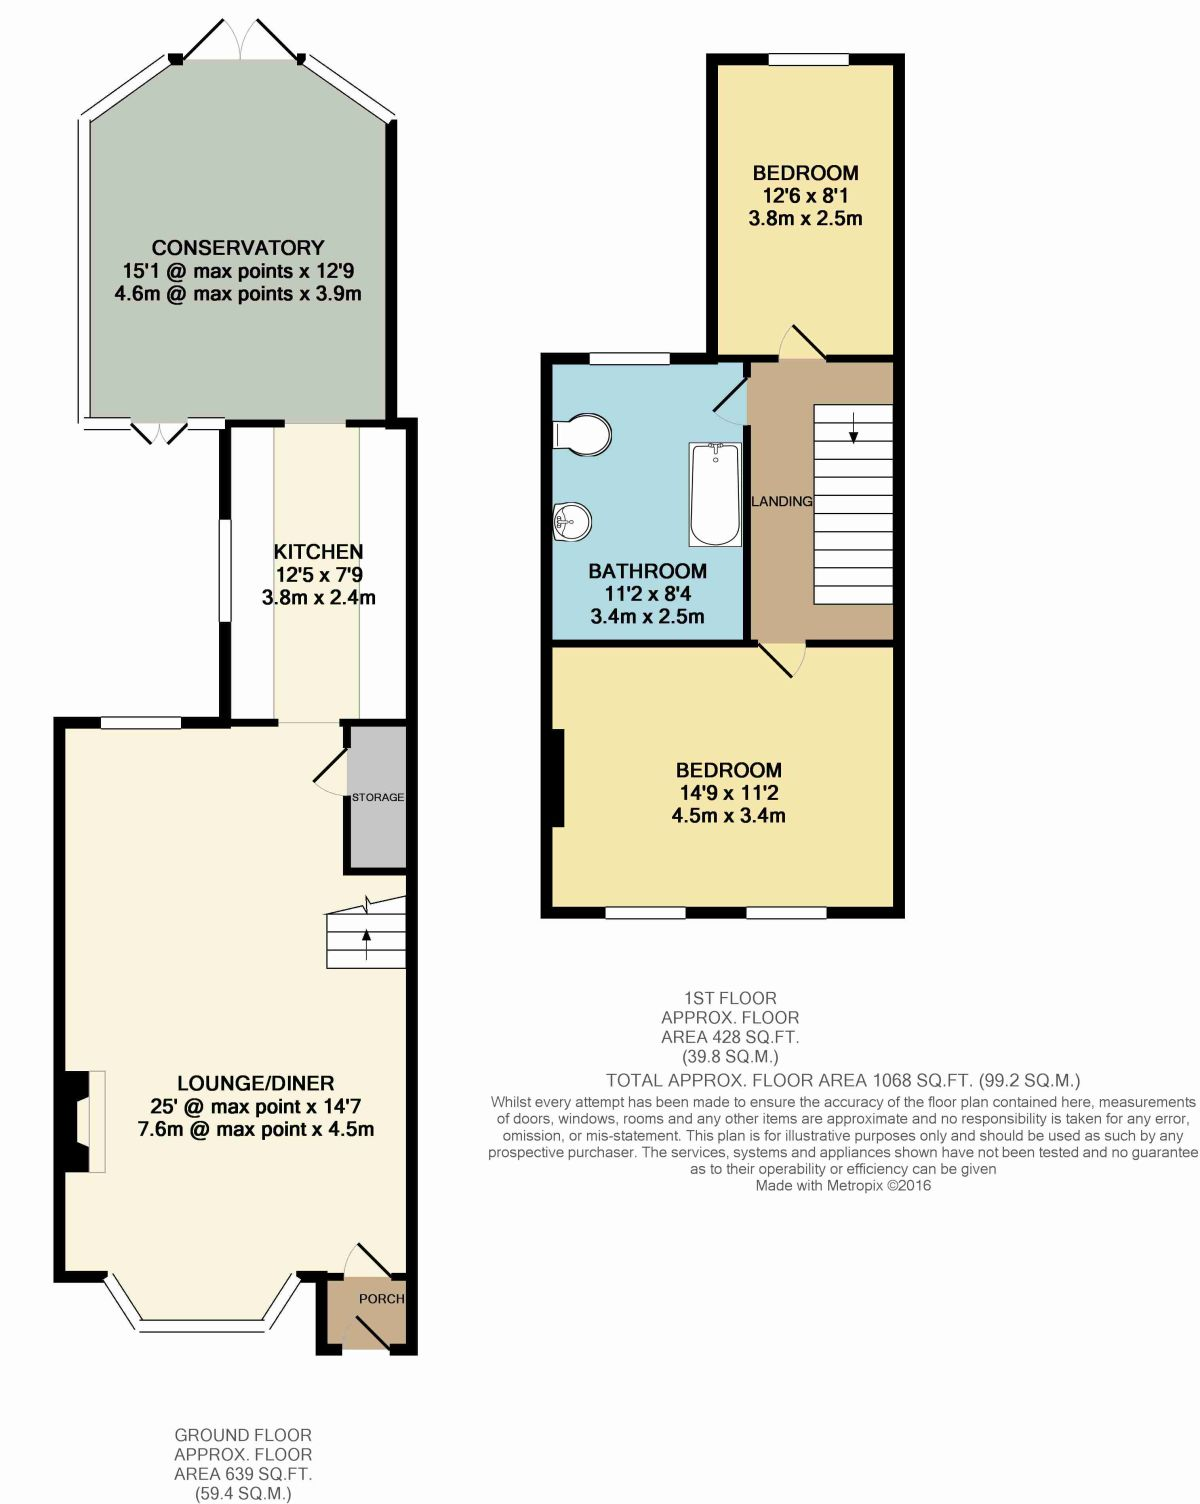 2 bedroom houses for sale in essex your move 2 bedroom houses for sale in east sussex your move